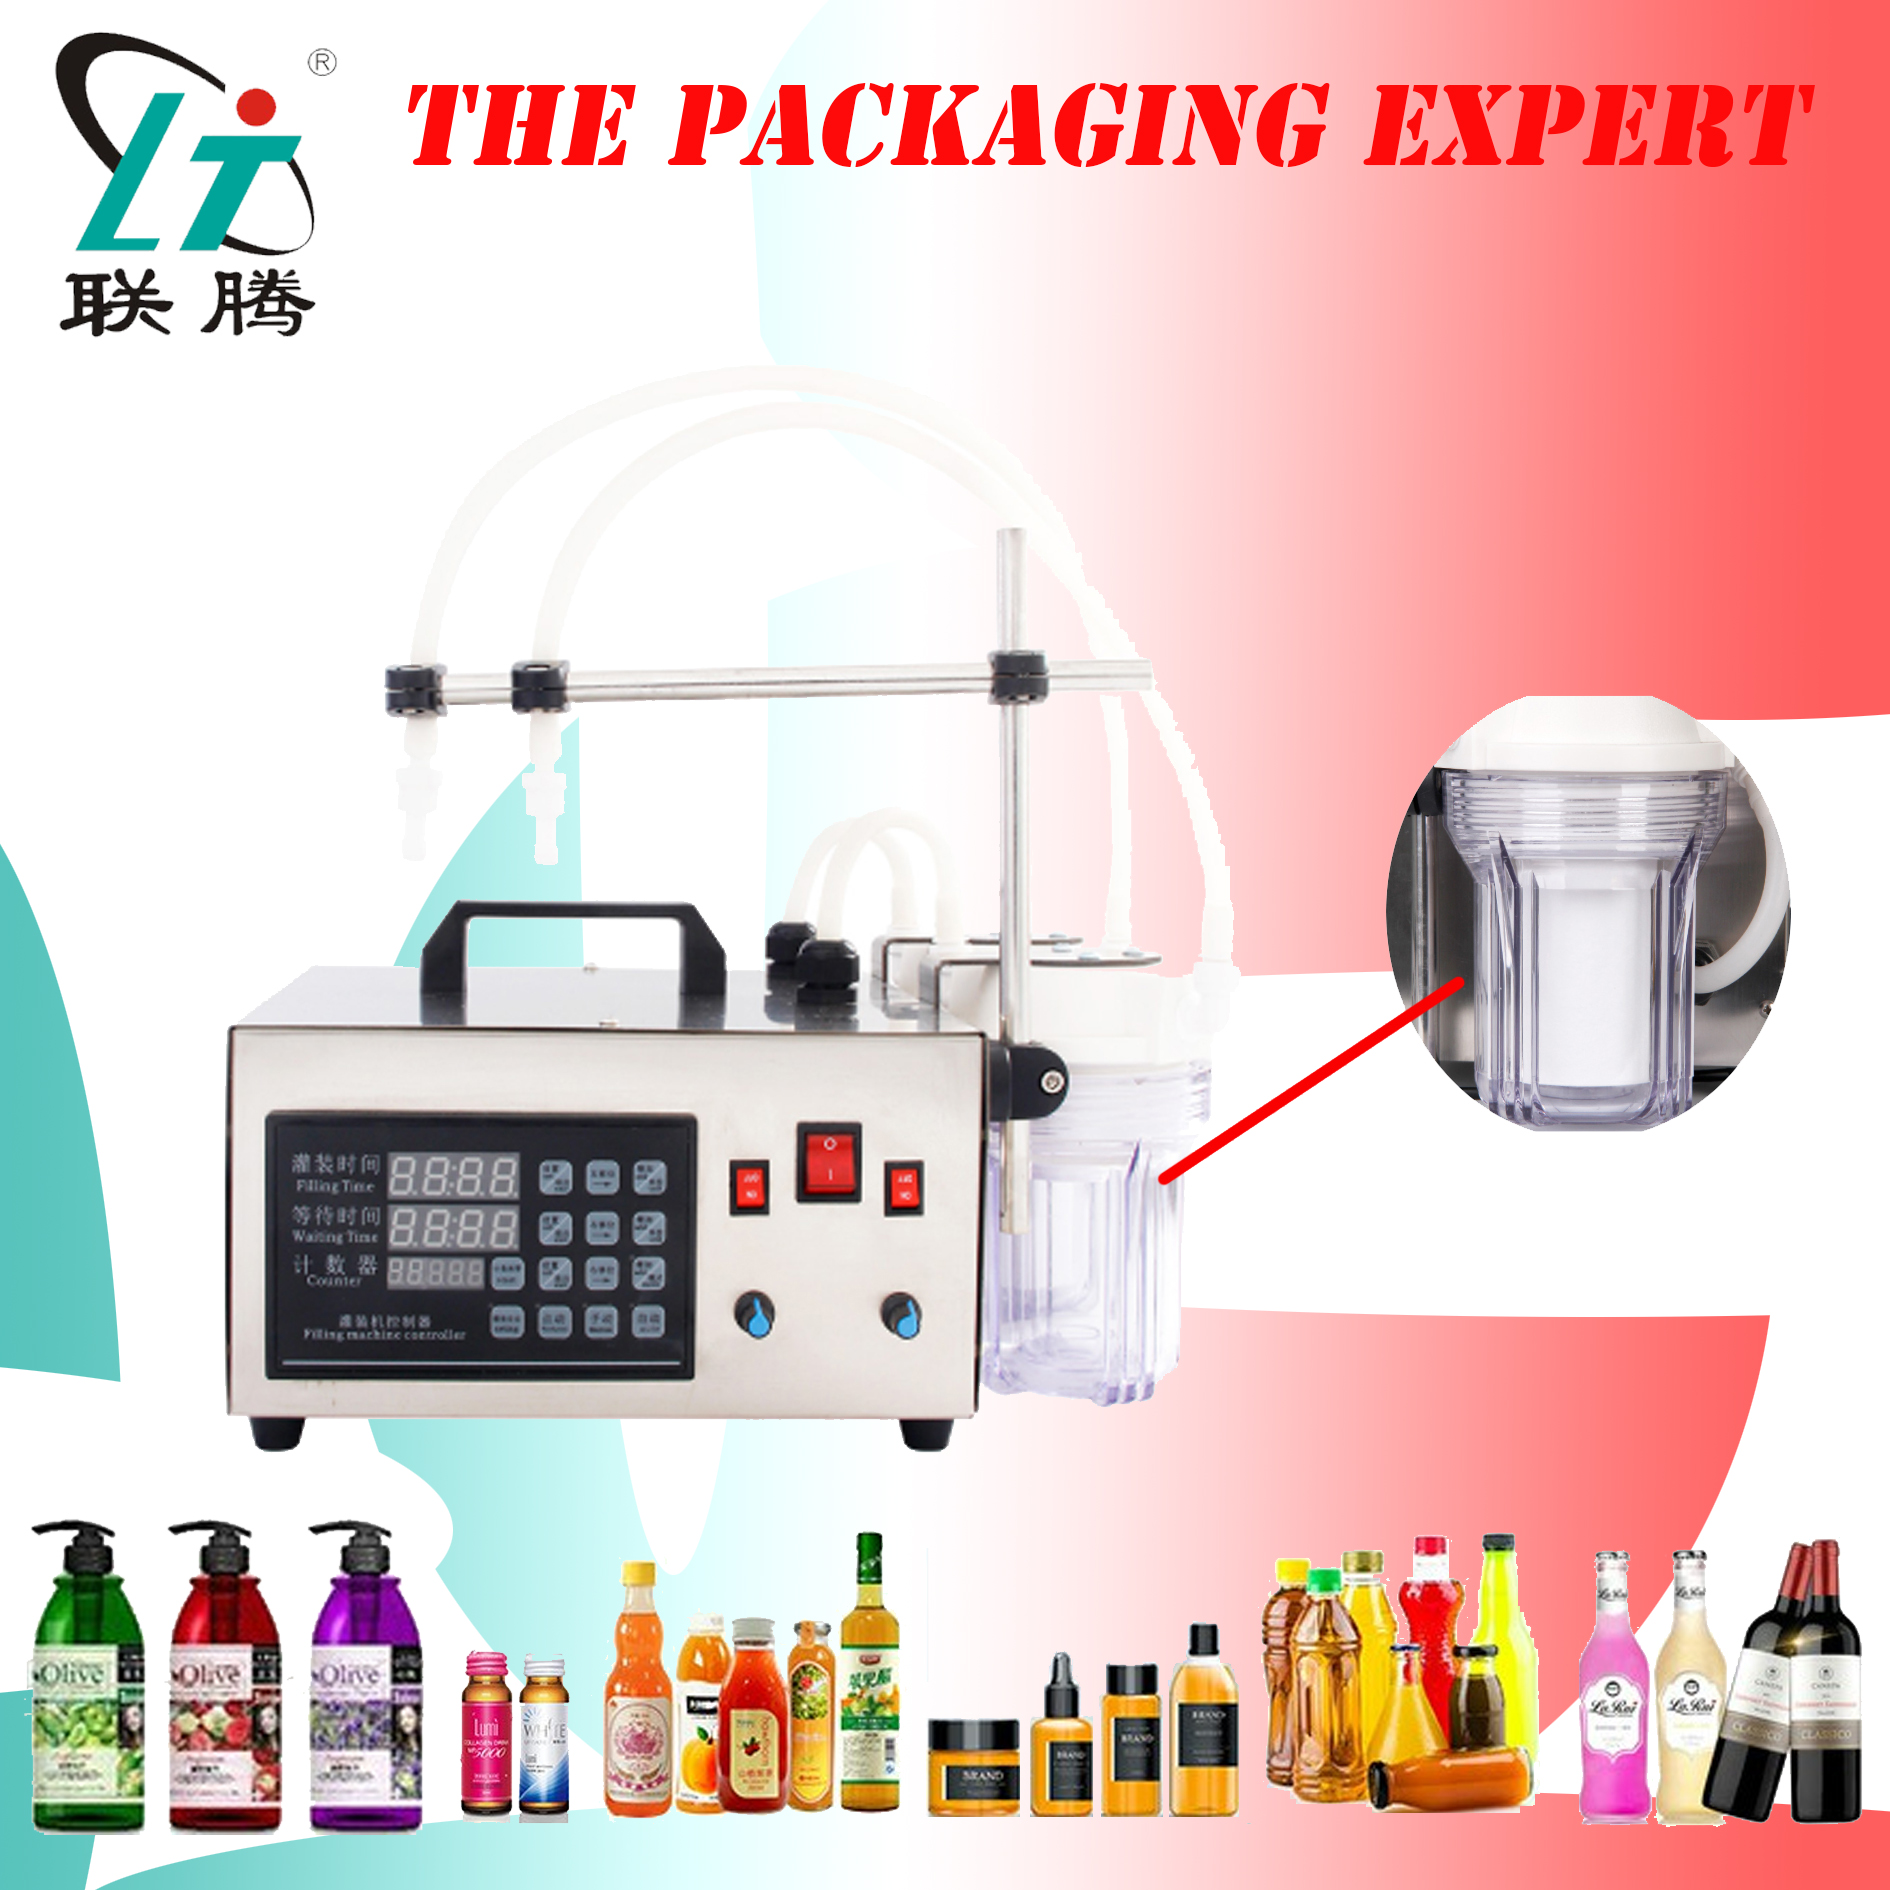 Digital Control Liquid Filling Machine Double Heads 2 Nozzles With Filter Food Safe Health Filler 4 Drinks Juice Liquor Chemical